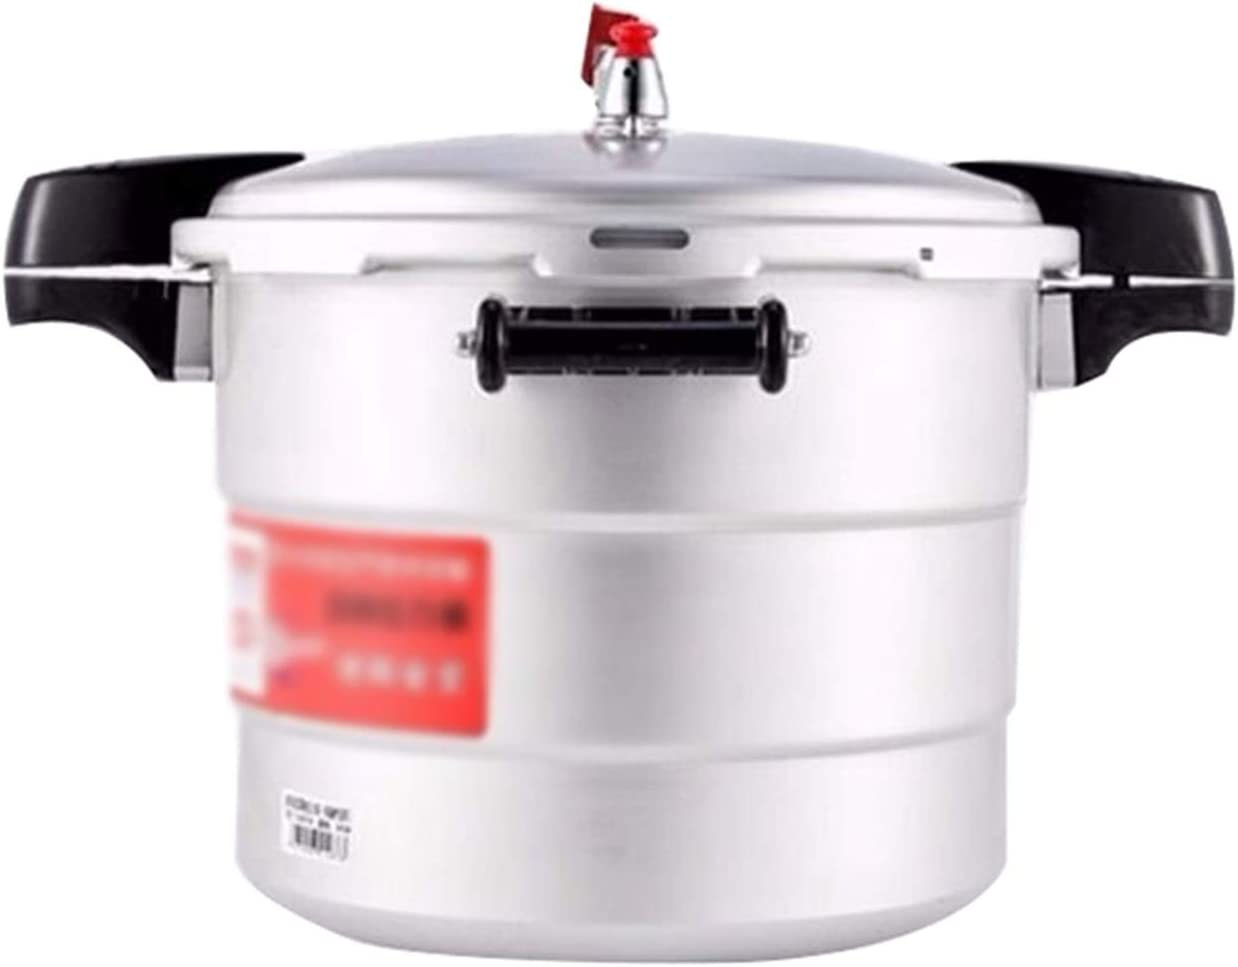 Multi-function Explosion-proof Induction Cooker, Commercial Large-capacity Pressure Cooker, General-purpose Pressure Cooker, Special Pressure Cooker For Canteens, 18L / 23L / 27L / 32L